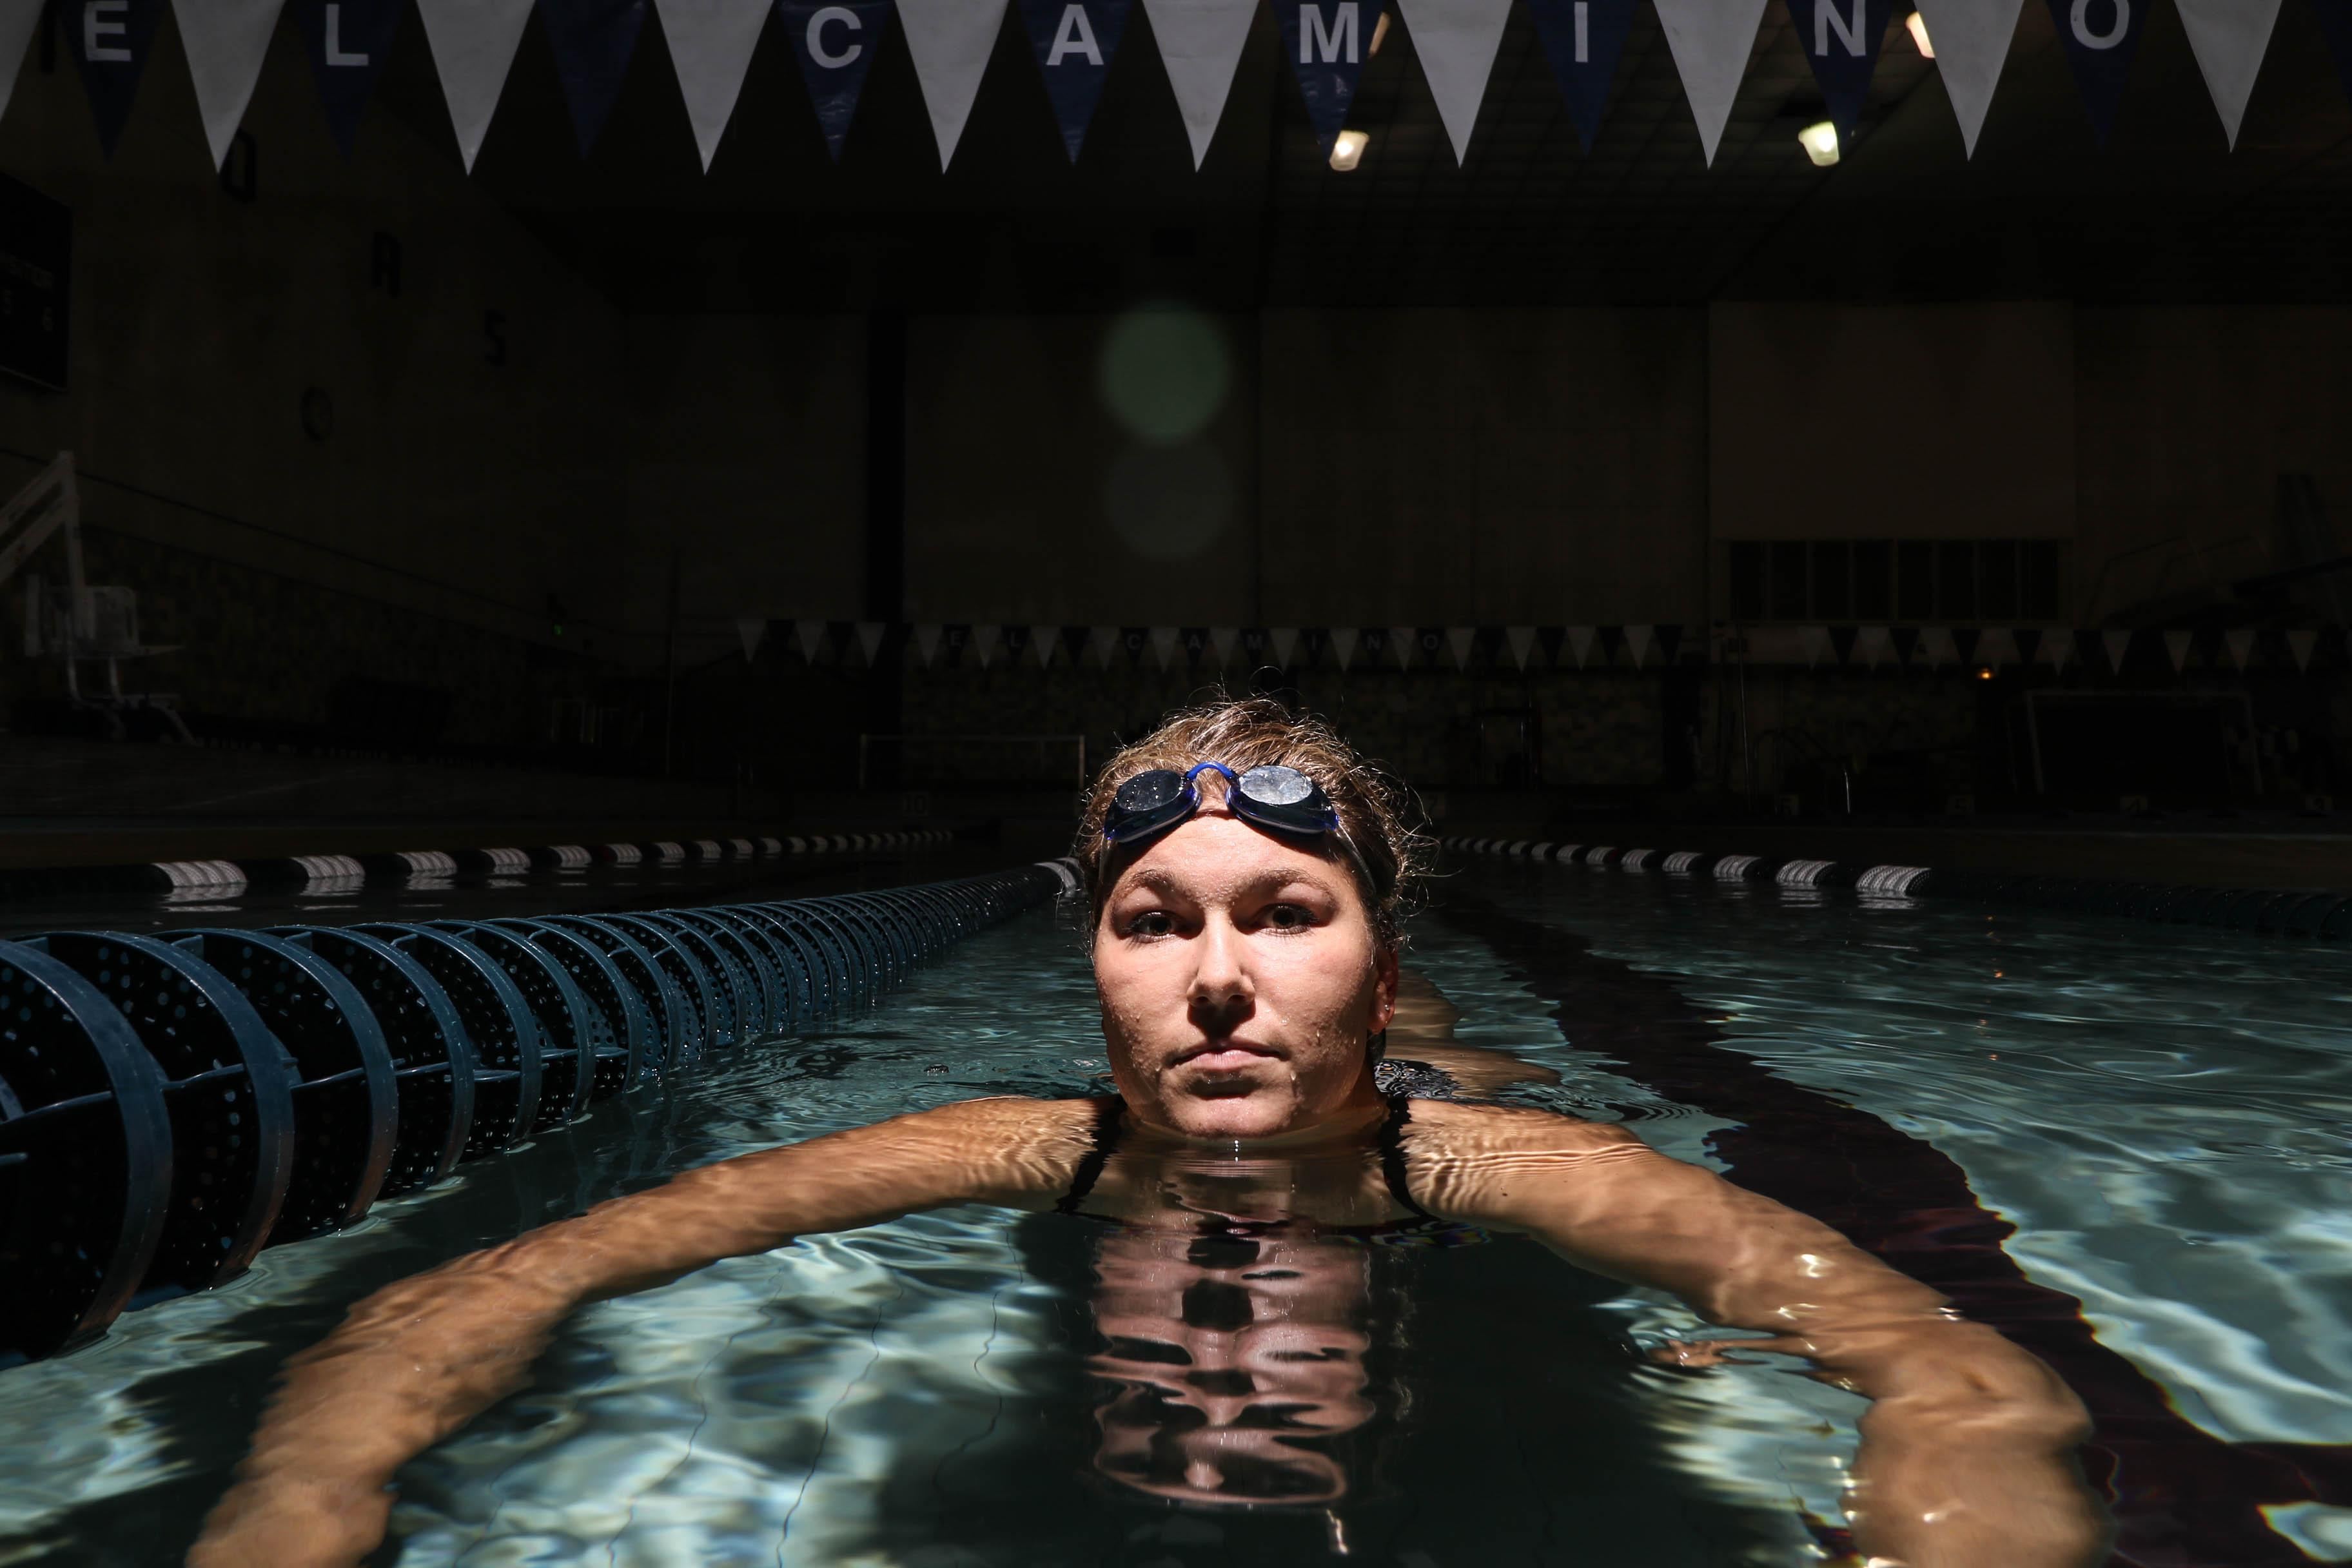 Monica Bender, 20, a member of the El Camino 2015 Conference Champion women's swim team and an accomplished long-distance swimmer achieved a personal goal of swimming across the English Channel in 13 hrs and 41 mins. Photo credit: Jackie Romano